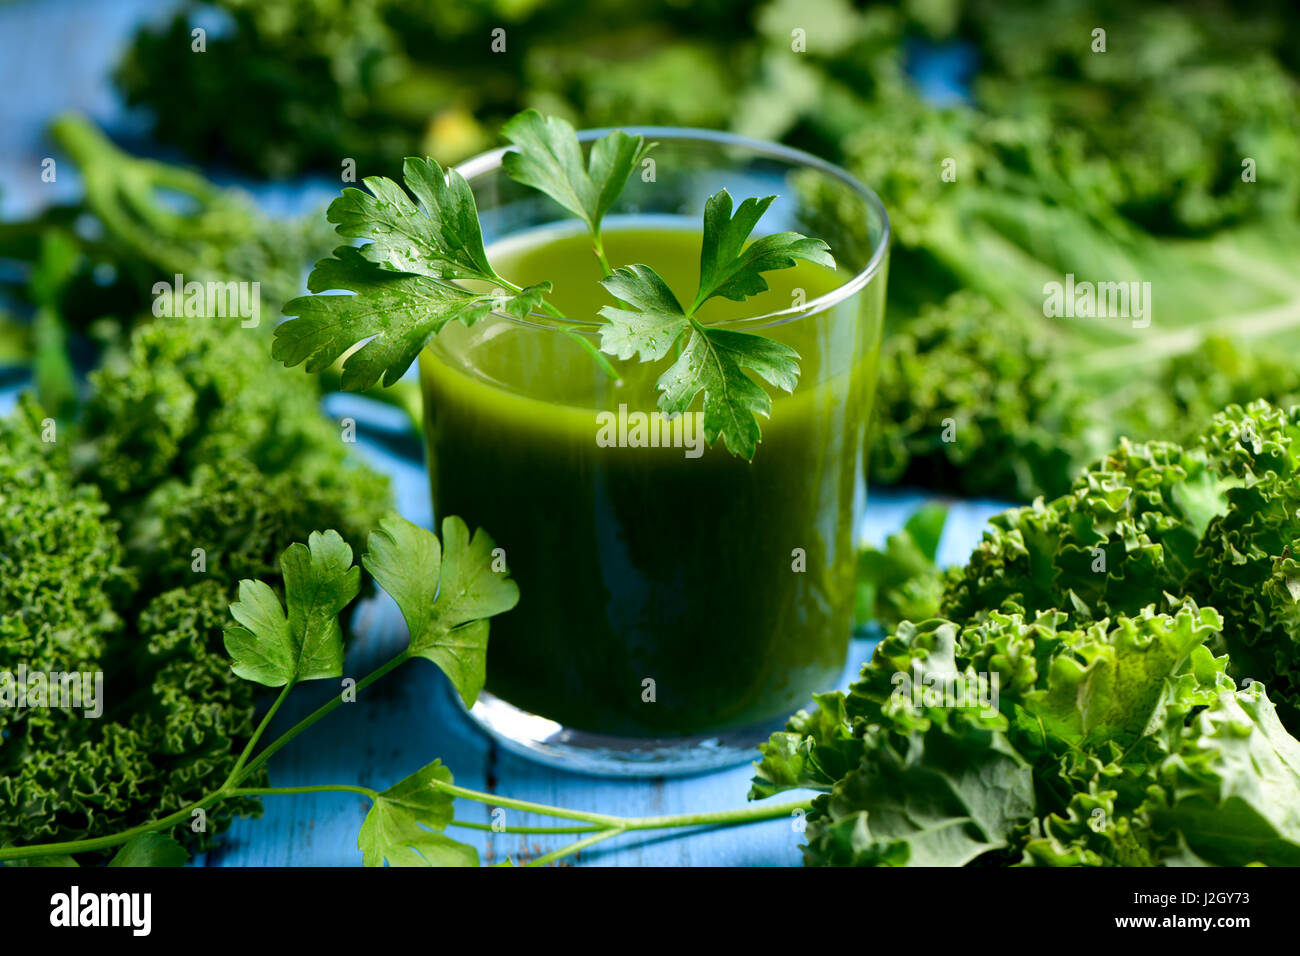 a glass with kale smoothie topped with a twig of parsley and some leaves of kale on a blue rustic wooden table - Stock Image